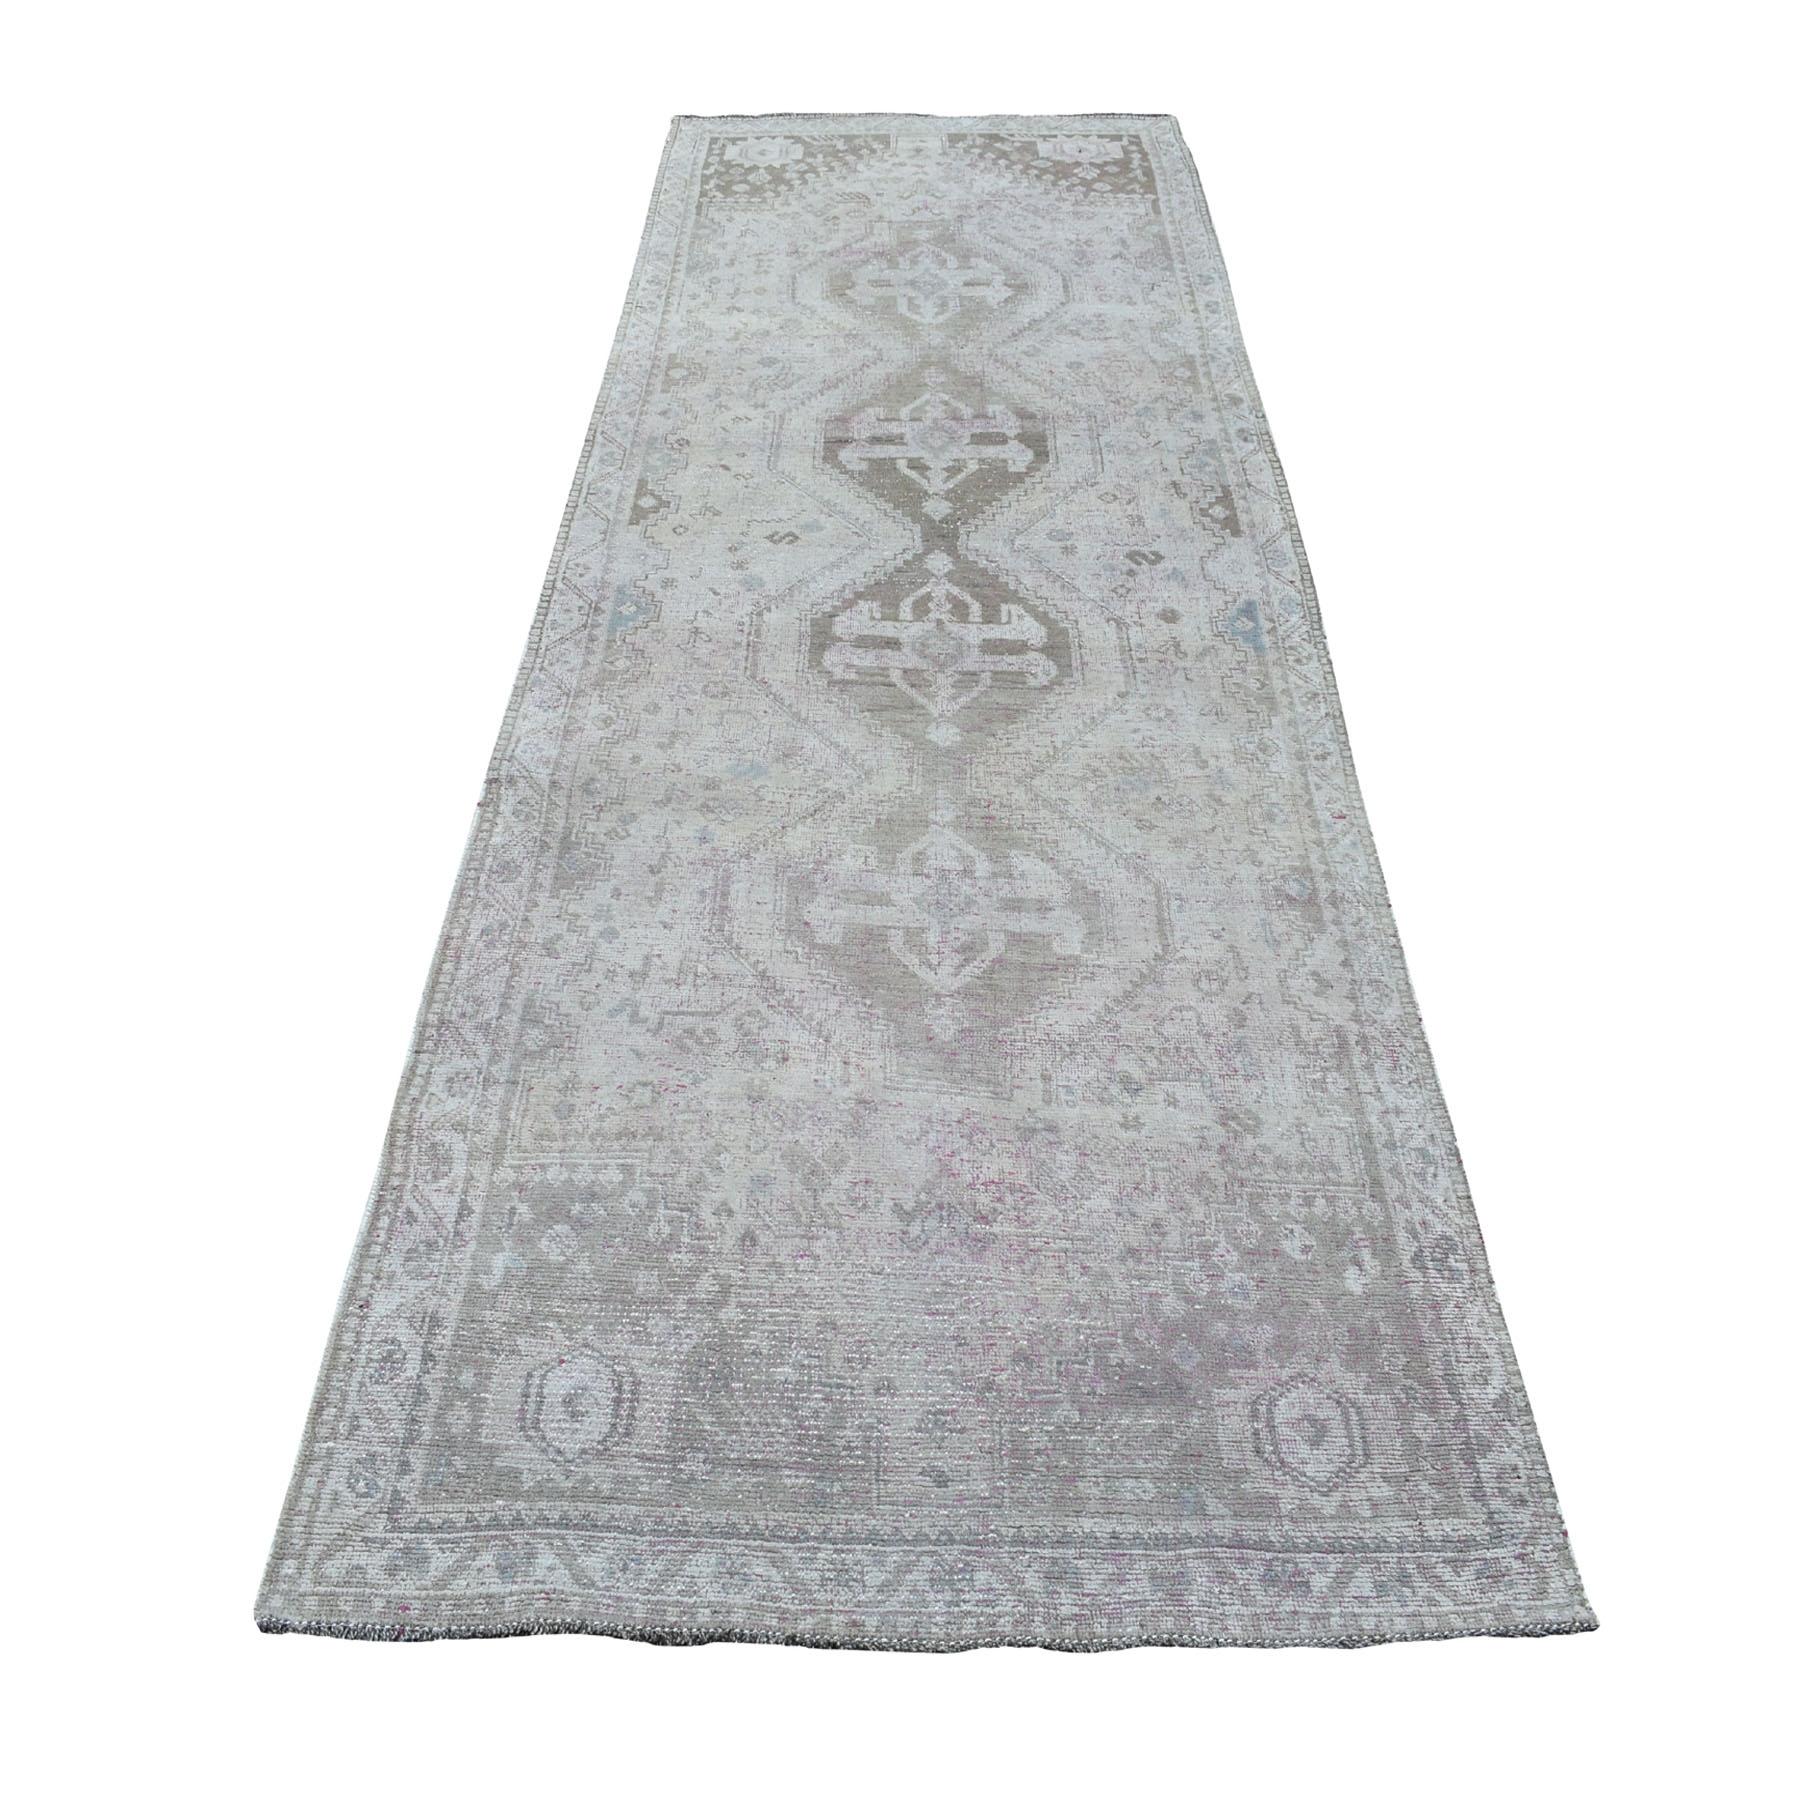 4'X11' Vintage And Worn Down Distressed Colors Persian Shiraz Wide Runner Hand Knotted Bohemian Rug moaed078